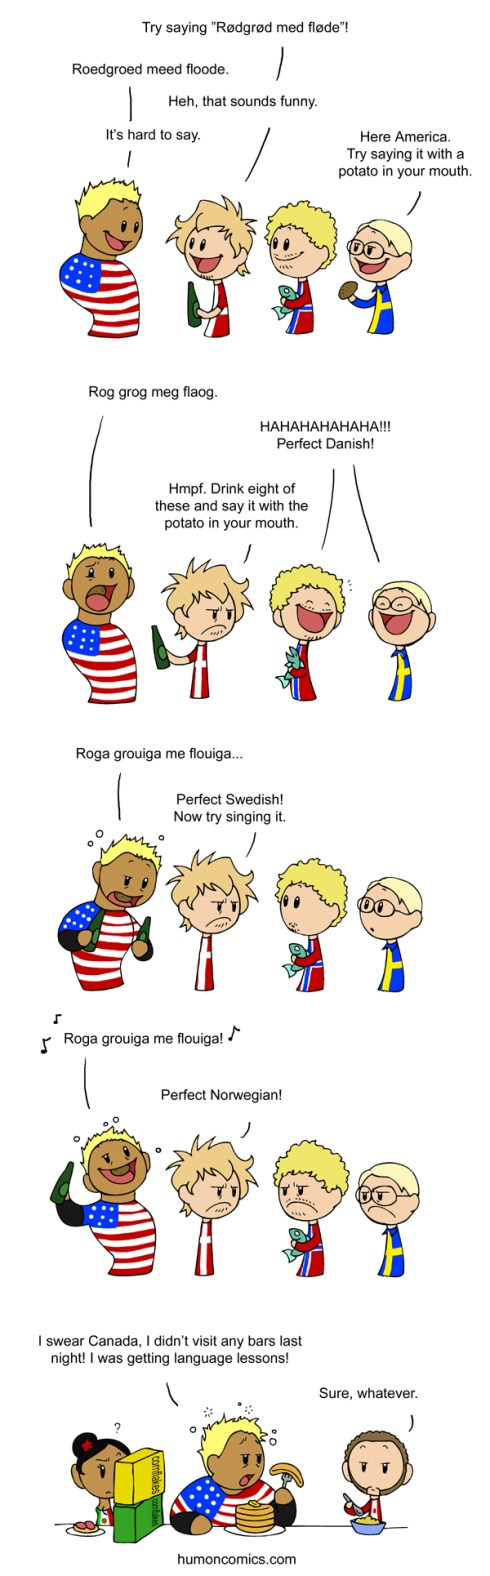 Learning the Scandinavian languages